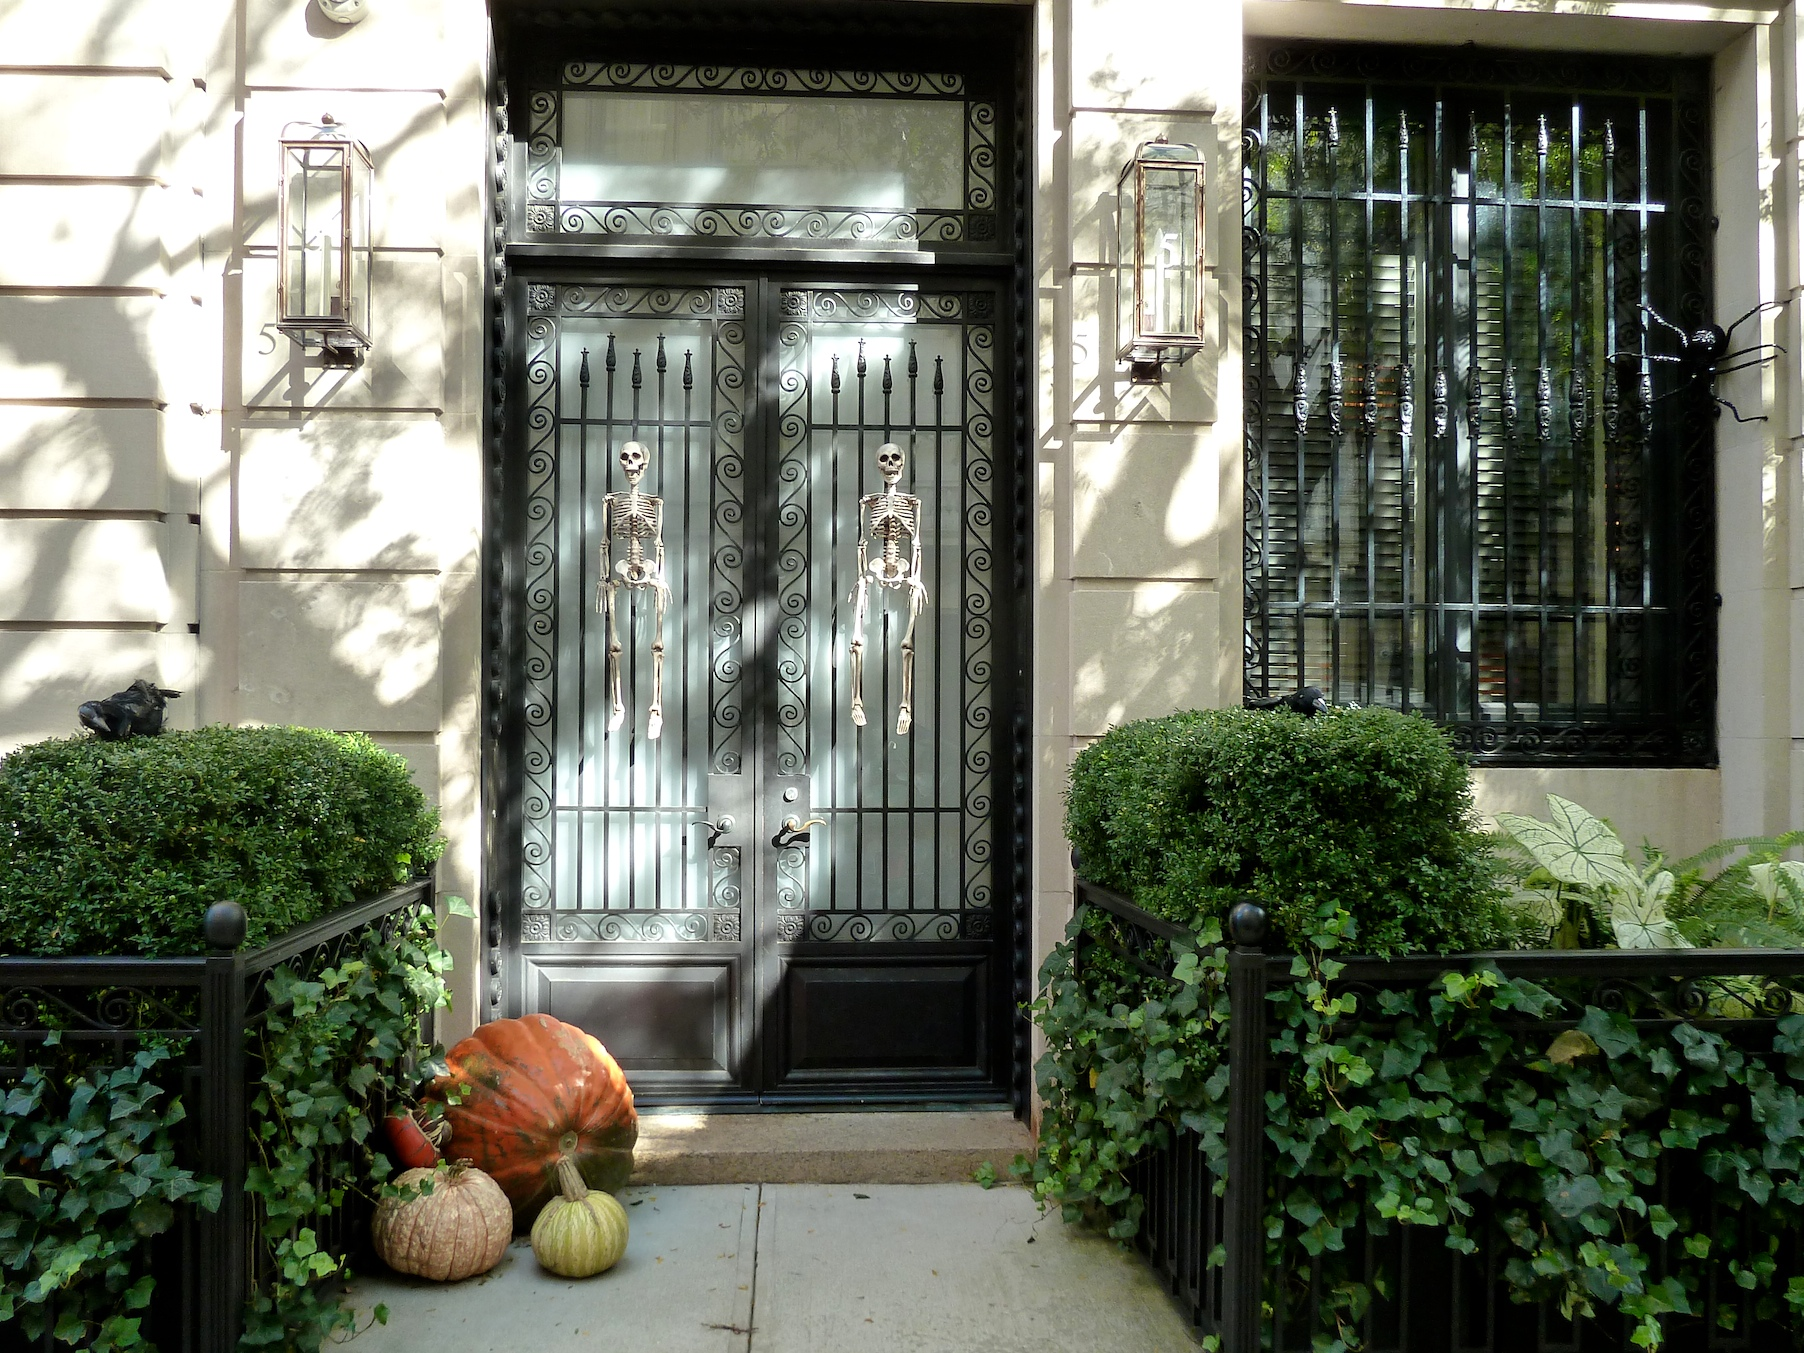 Back on the Upper East side, one of the classier Halloween Manhattan houses.